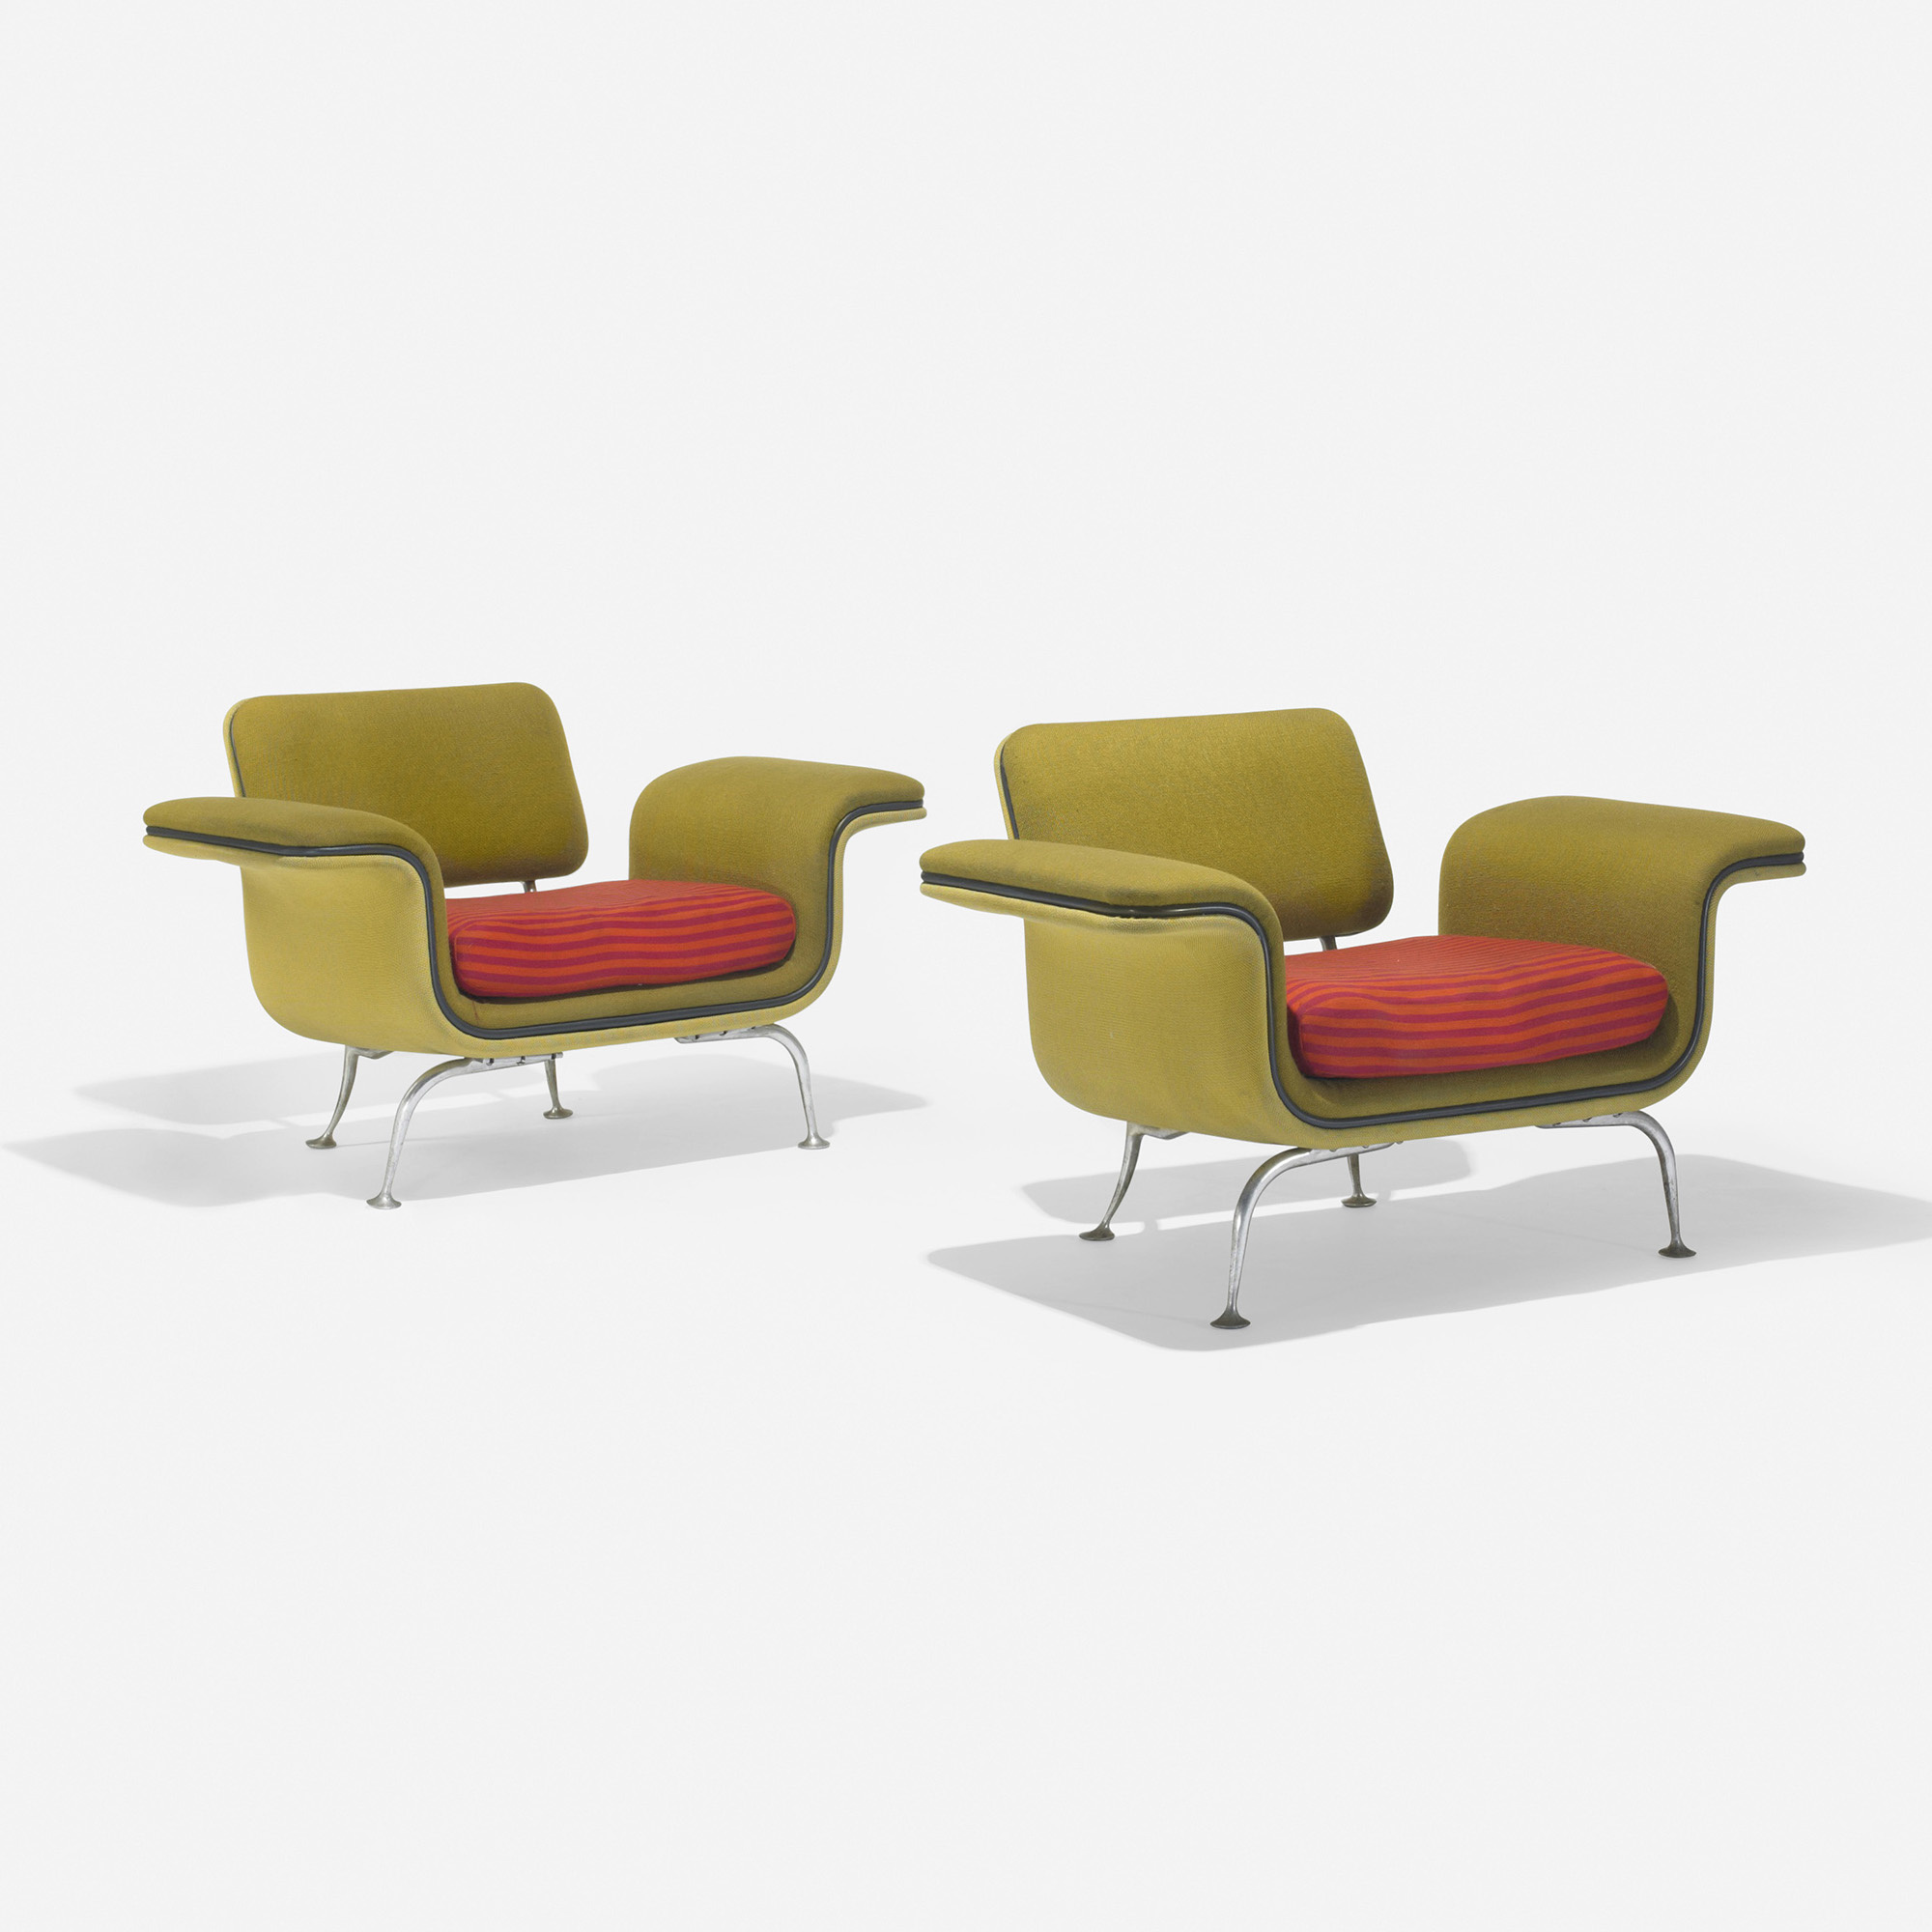 Home Designs October 2012: 429: Alexander Girard / Lounge Chairs Model 66310, Pair